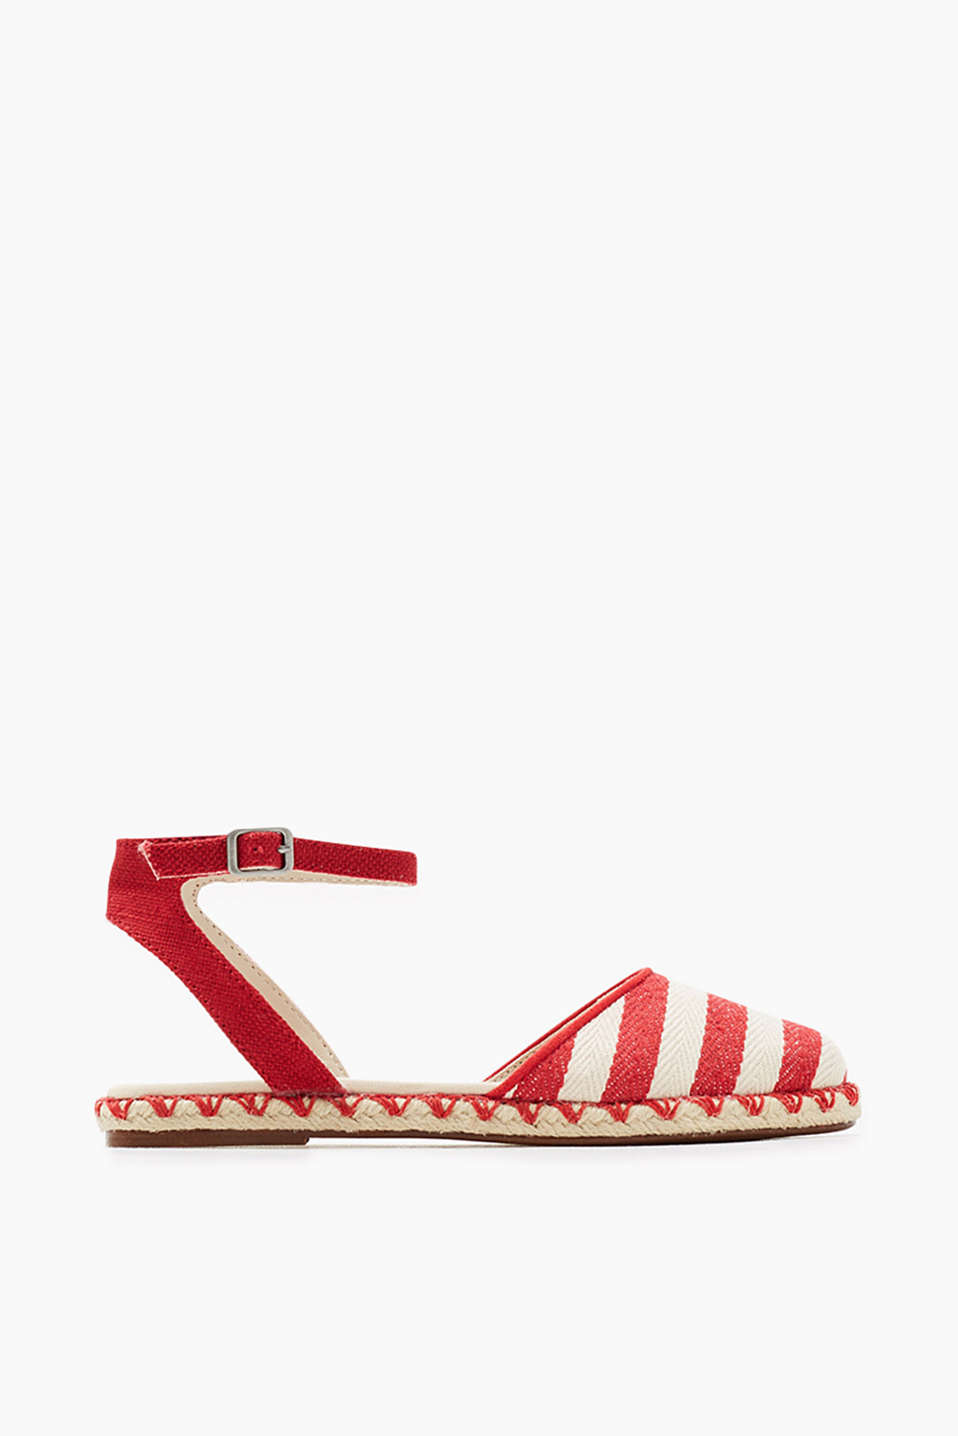 Closed sandals in an espadrilles look with a bast trim, stripes and ankle straps